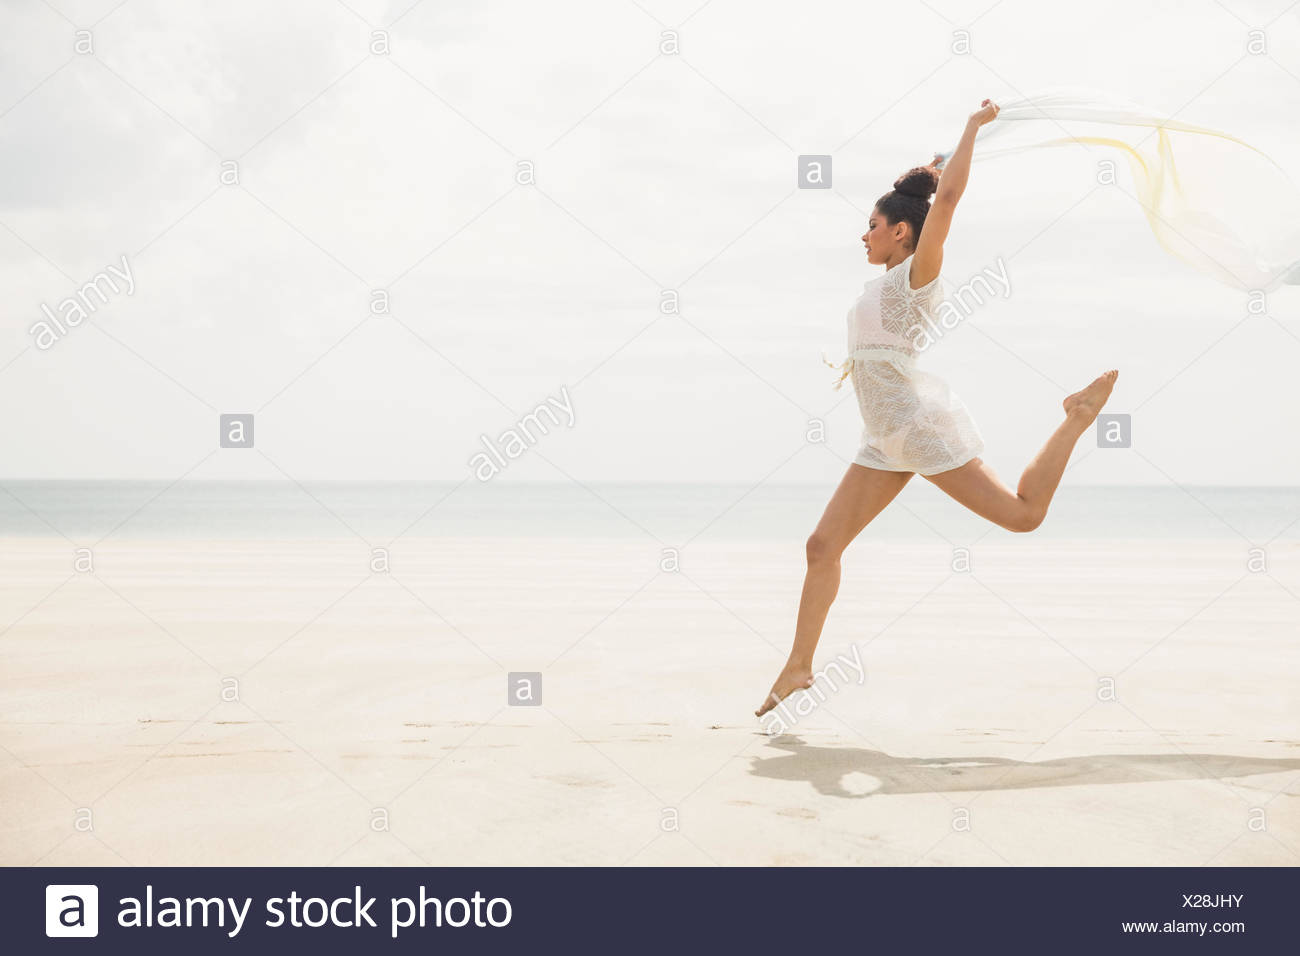 Stylish woman leaping with scarf - Stock Image